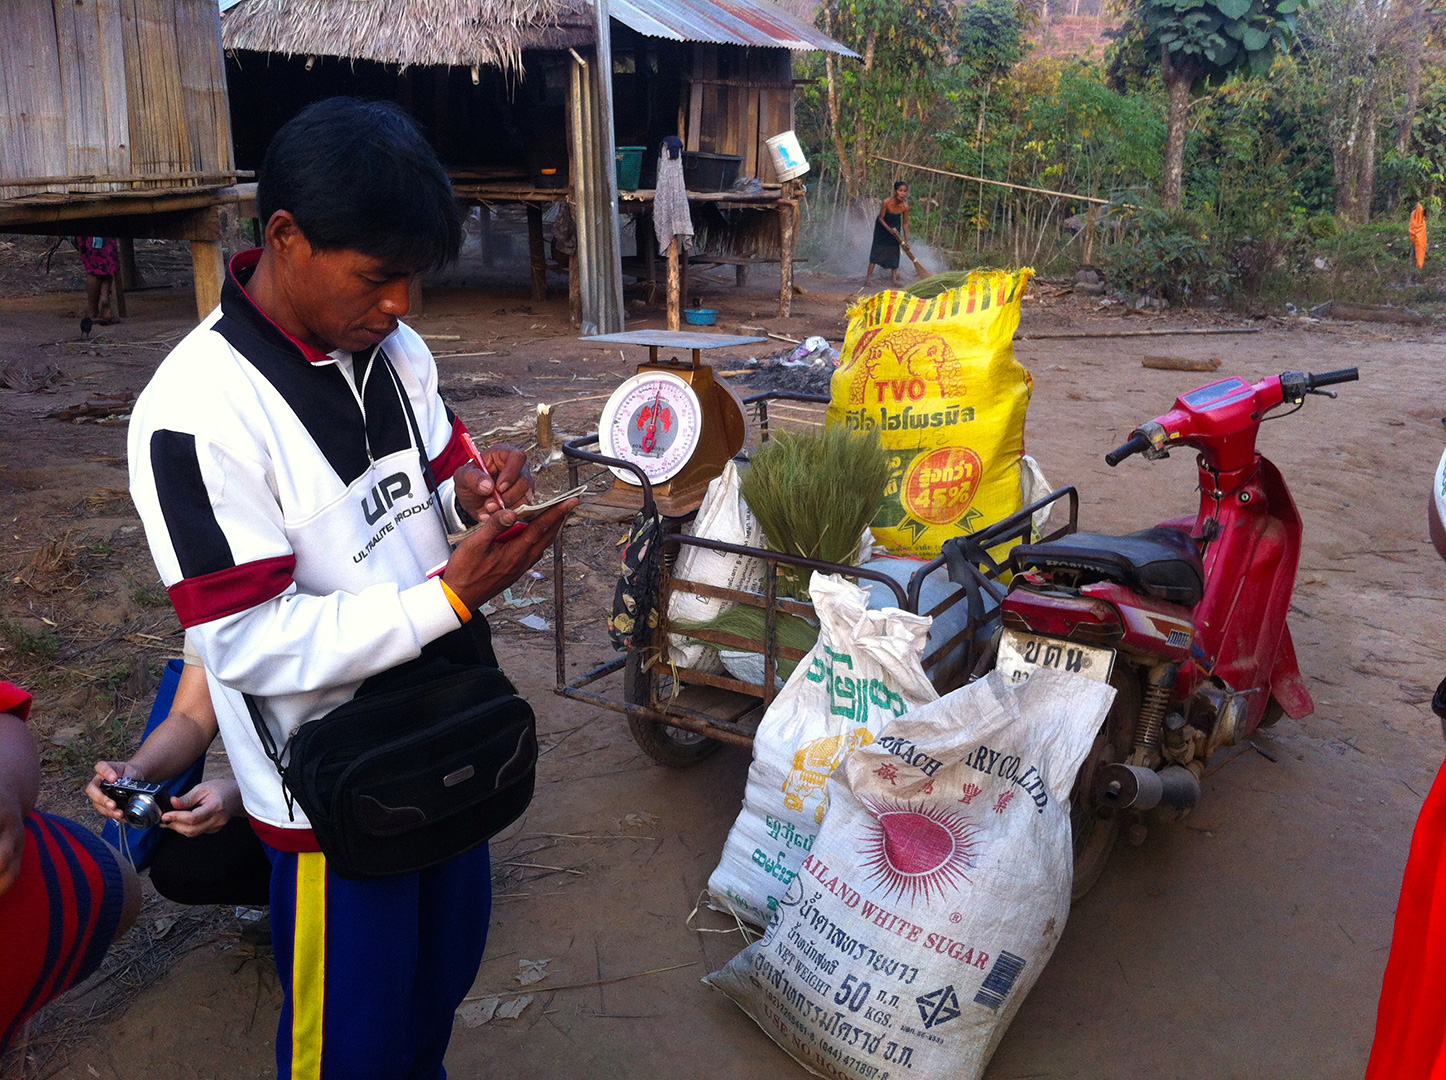 A middleman buying broom parts from the locals (Fung Na community)